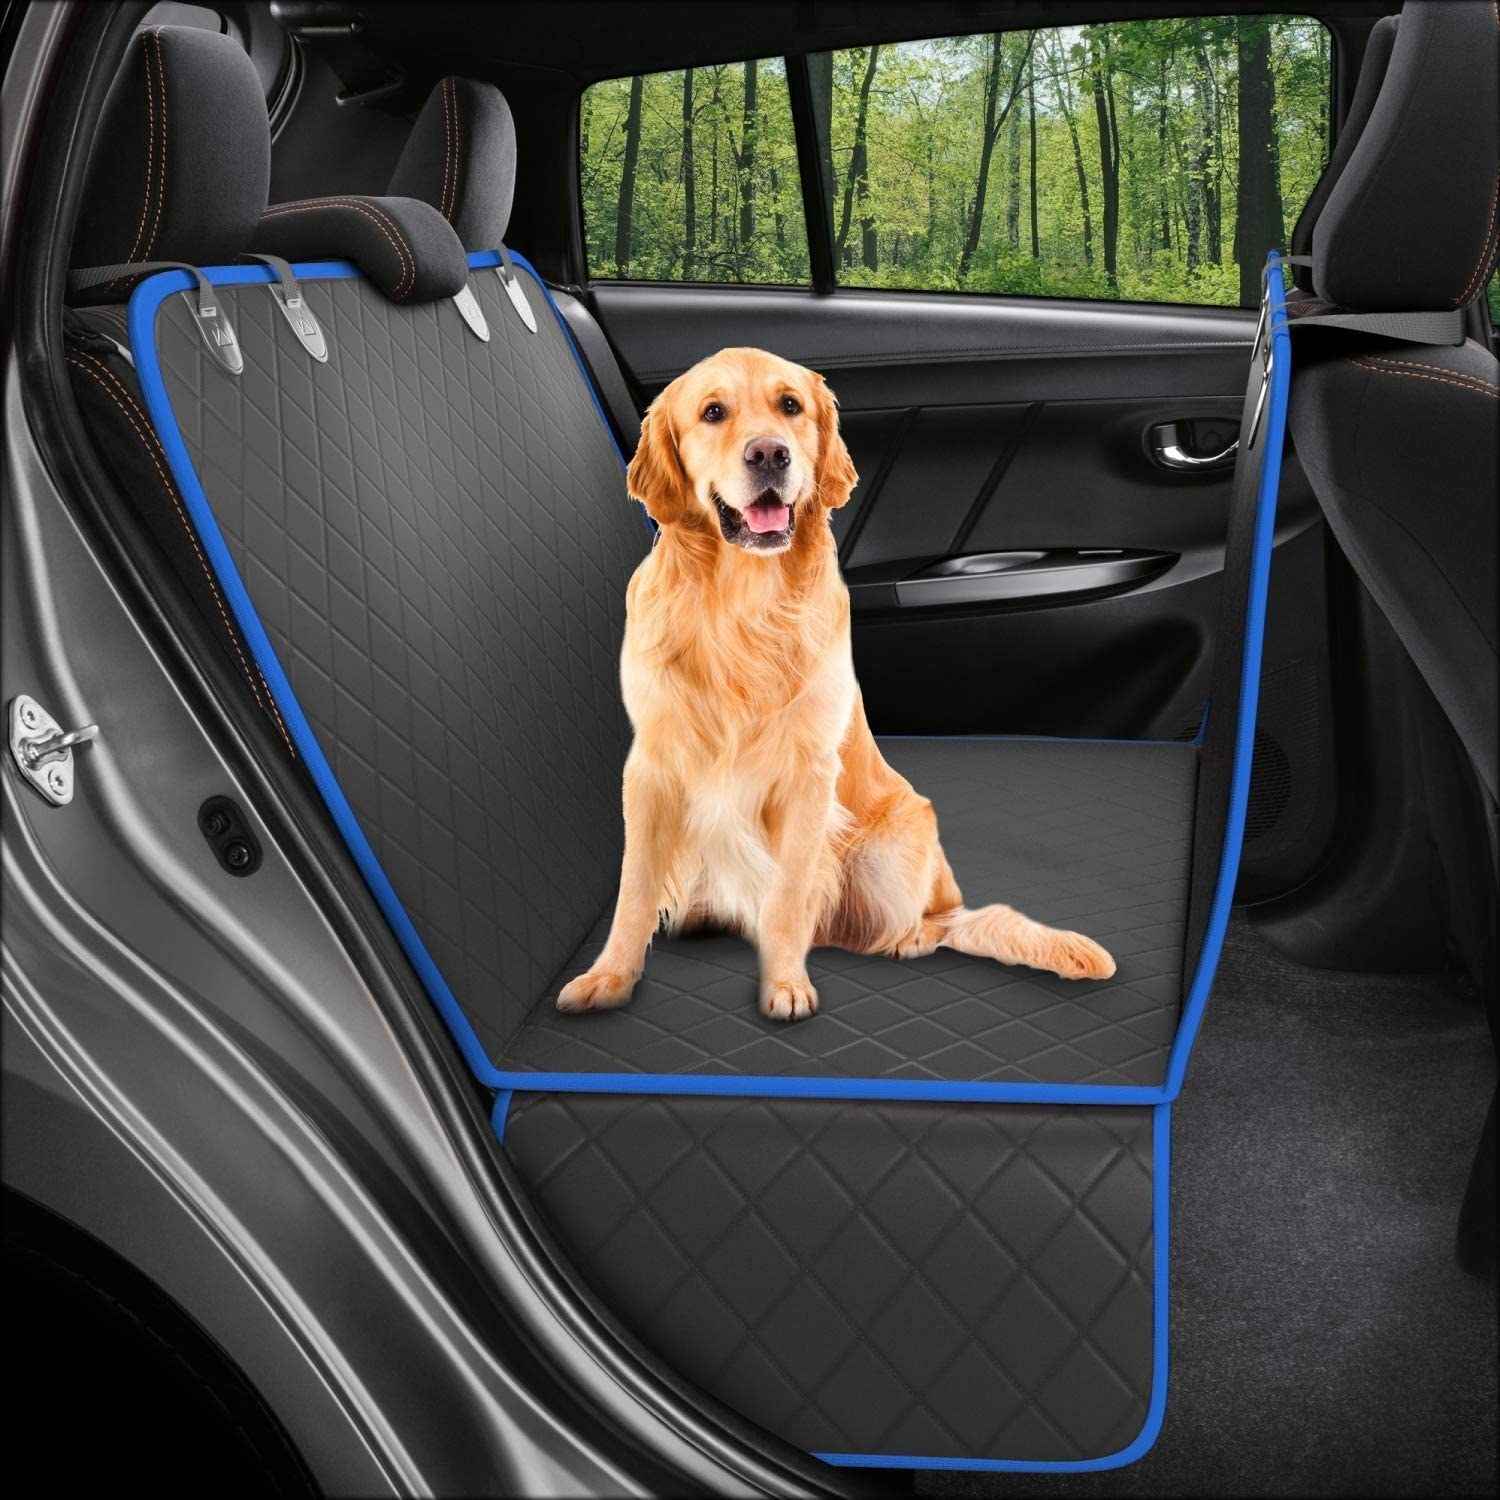 Dog on seat protector in back of car